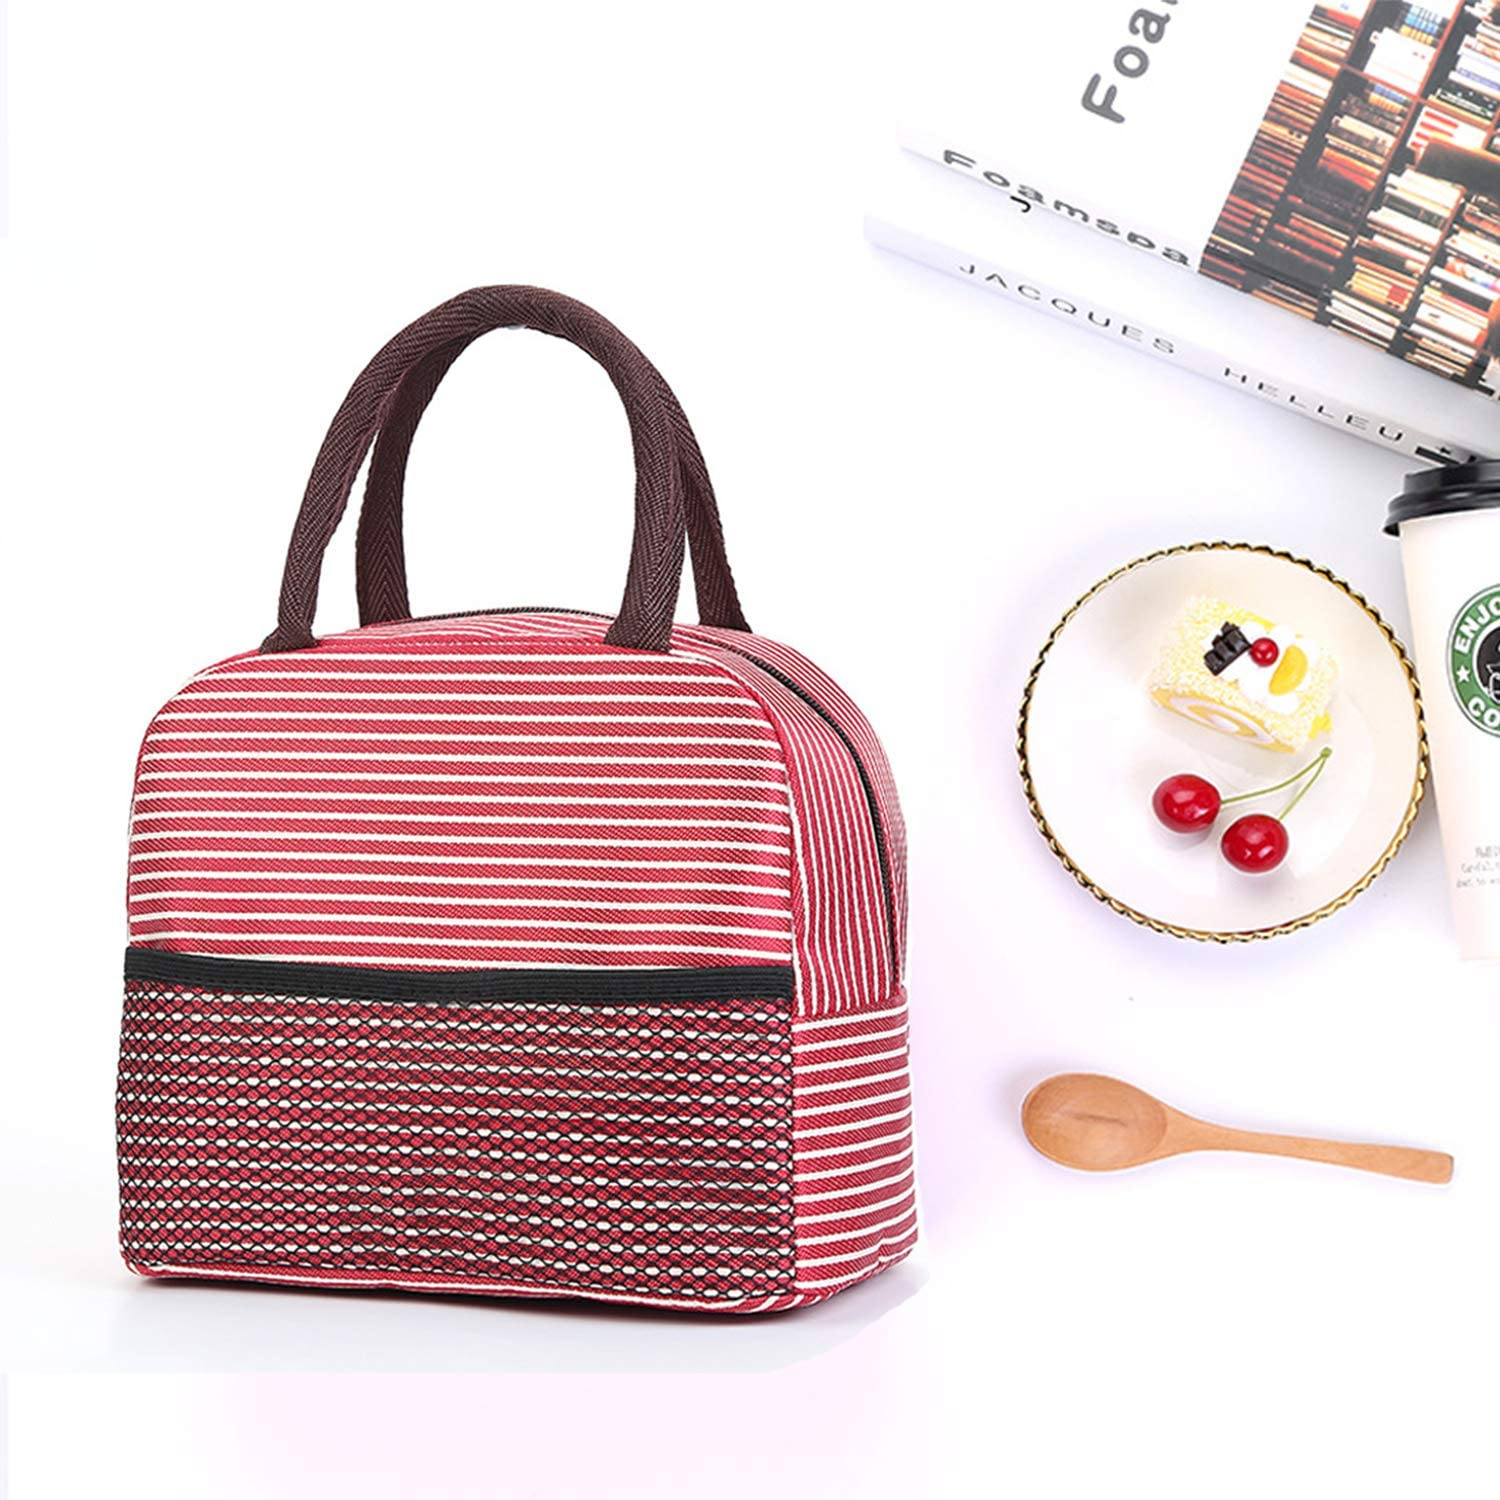 LuckY.Ss Insulated Lunch Bags Small for Women Work,Student Kids to School,Thermal Cooler Tote Bag Picnic Organizer Storage Lunch Box Portable and Reusable Rainbow Horse